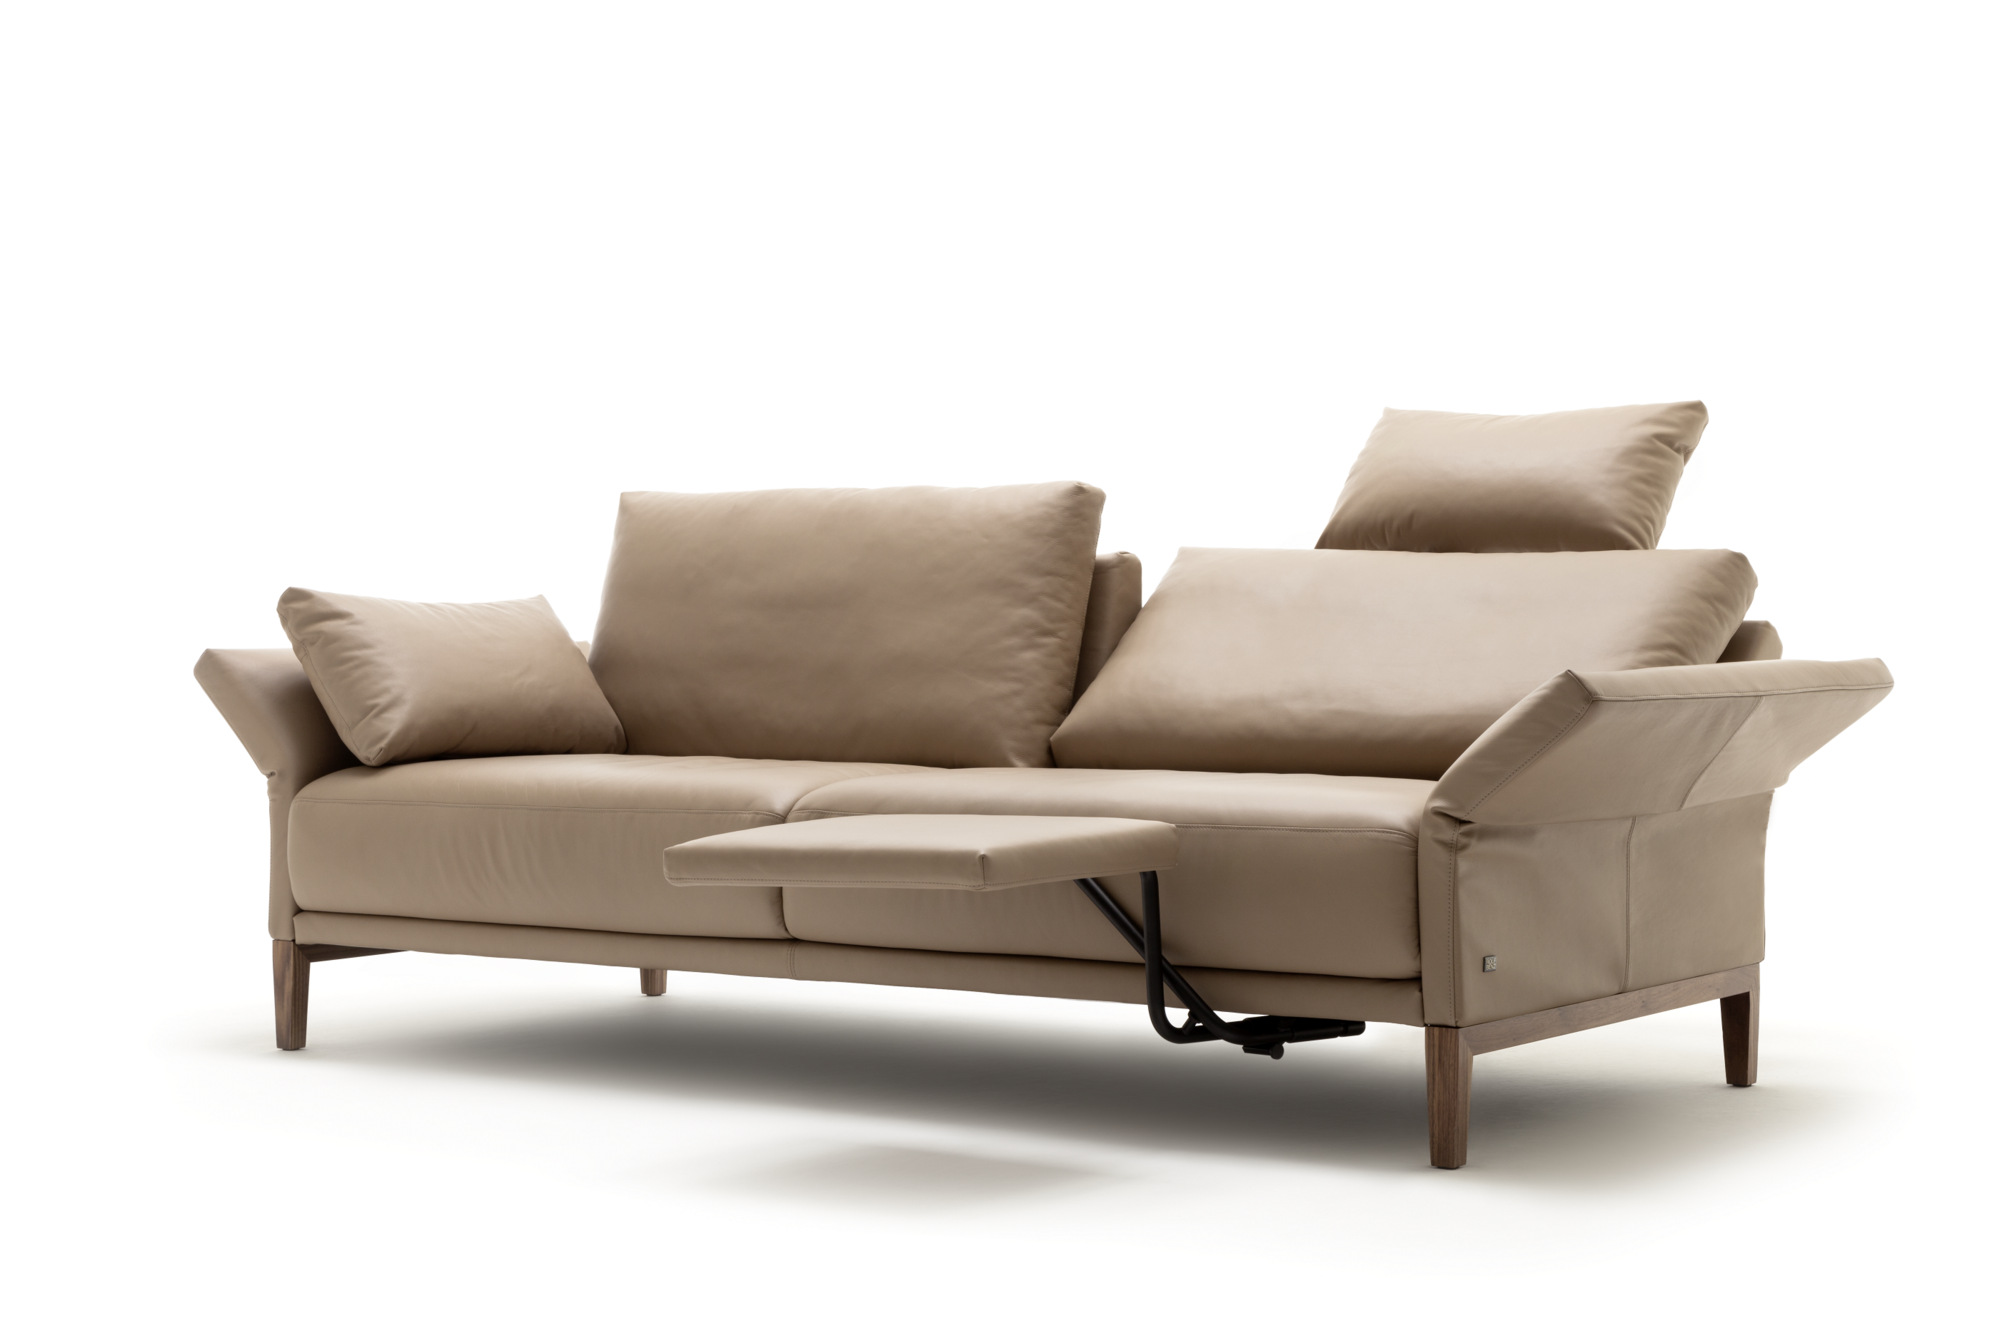 Cara Sofa Aus Leder Kollektion Cara By Rolf Benz Design